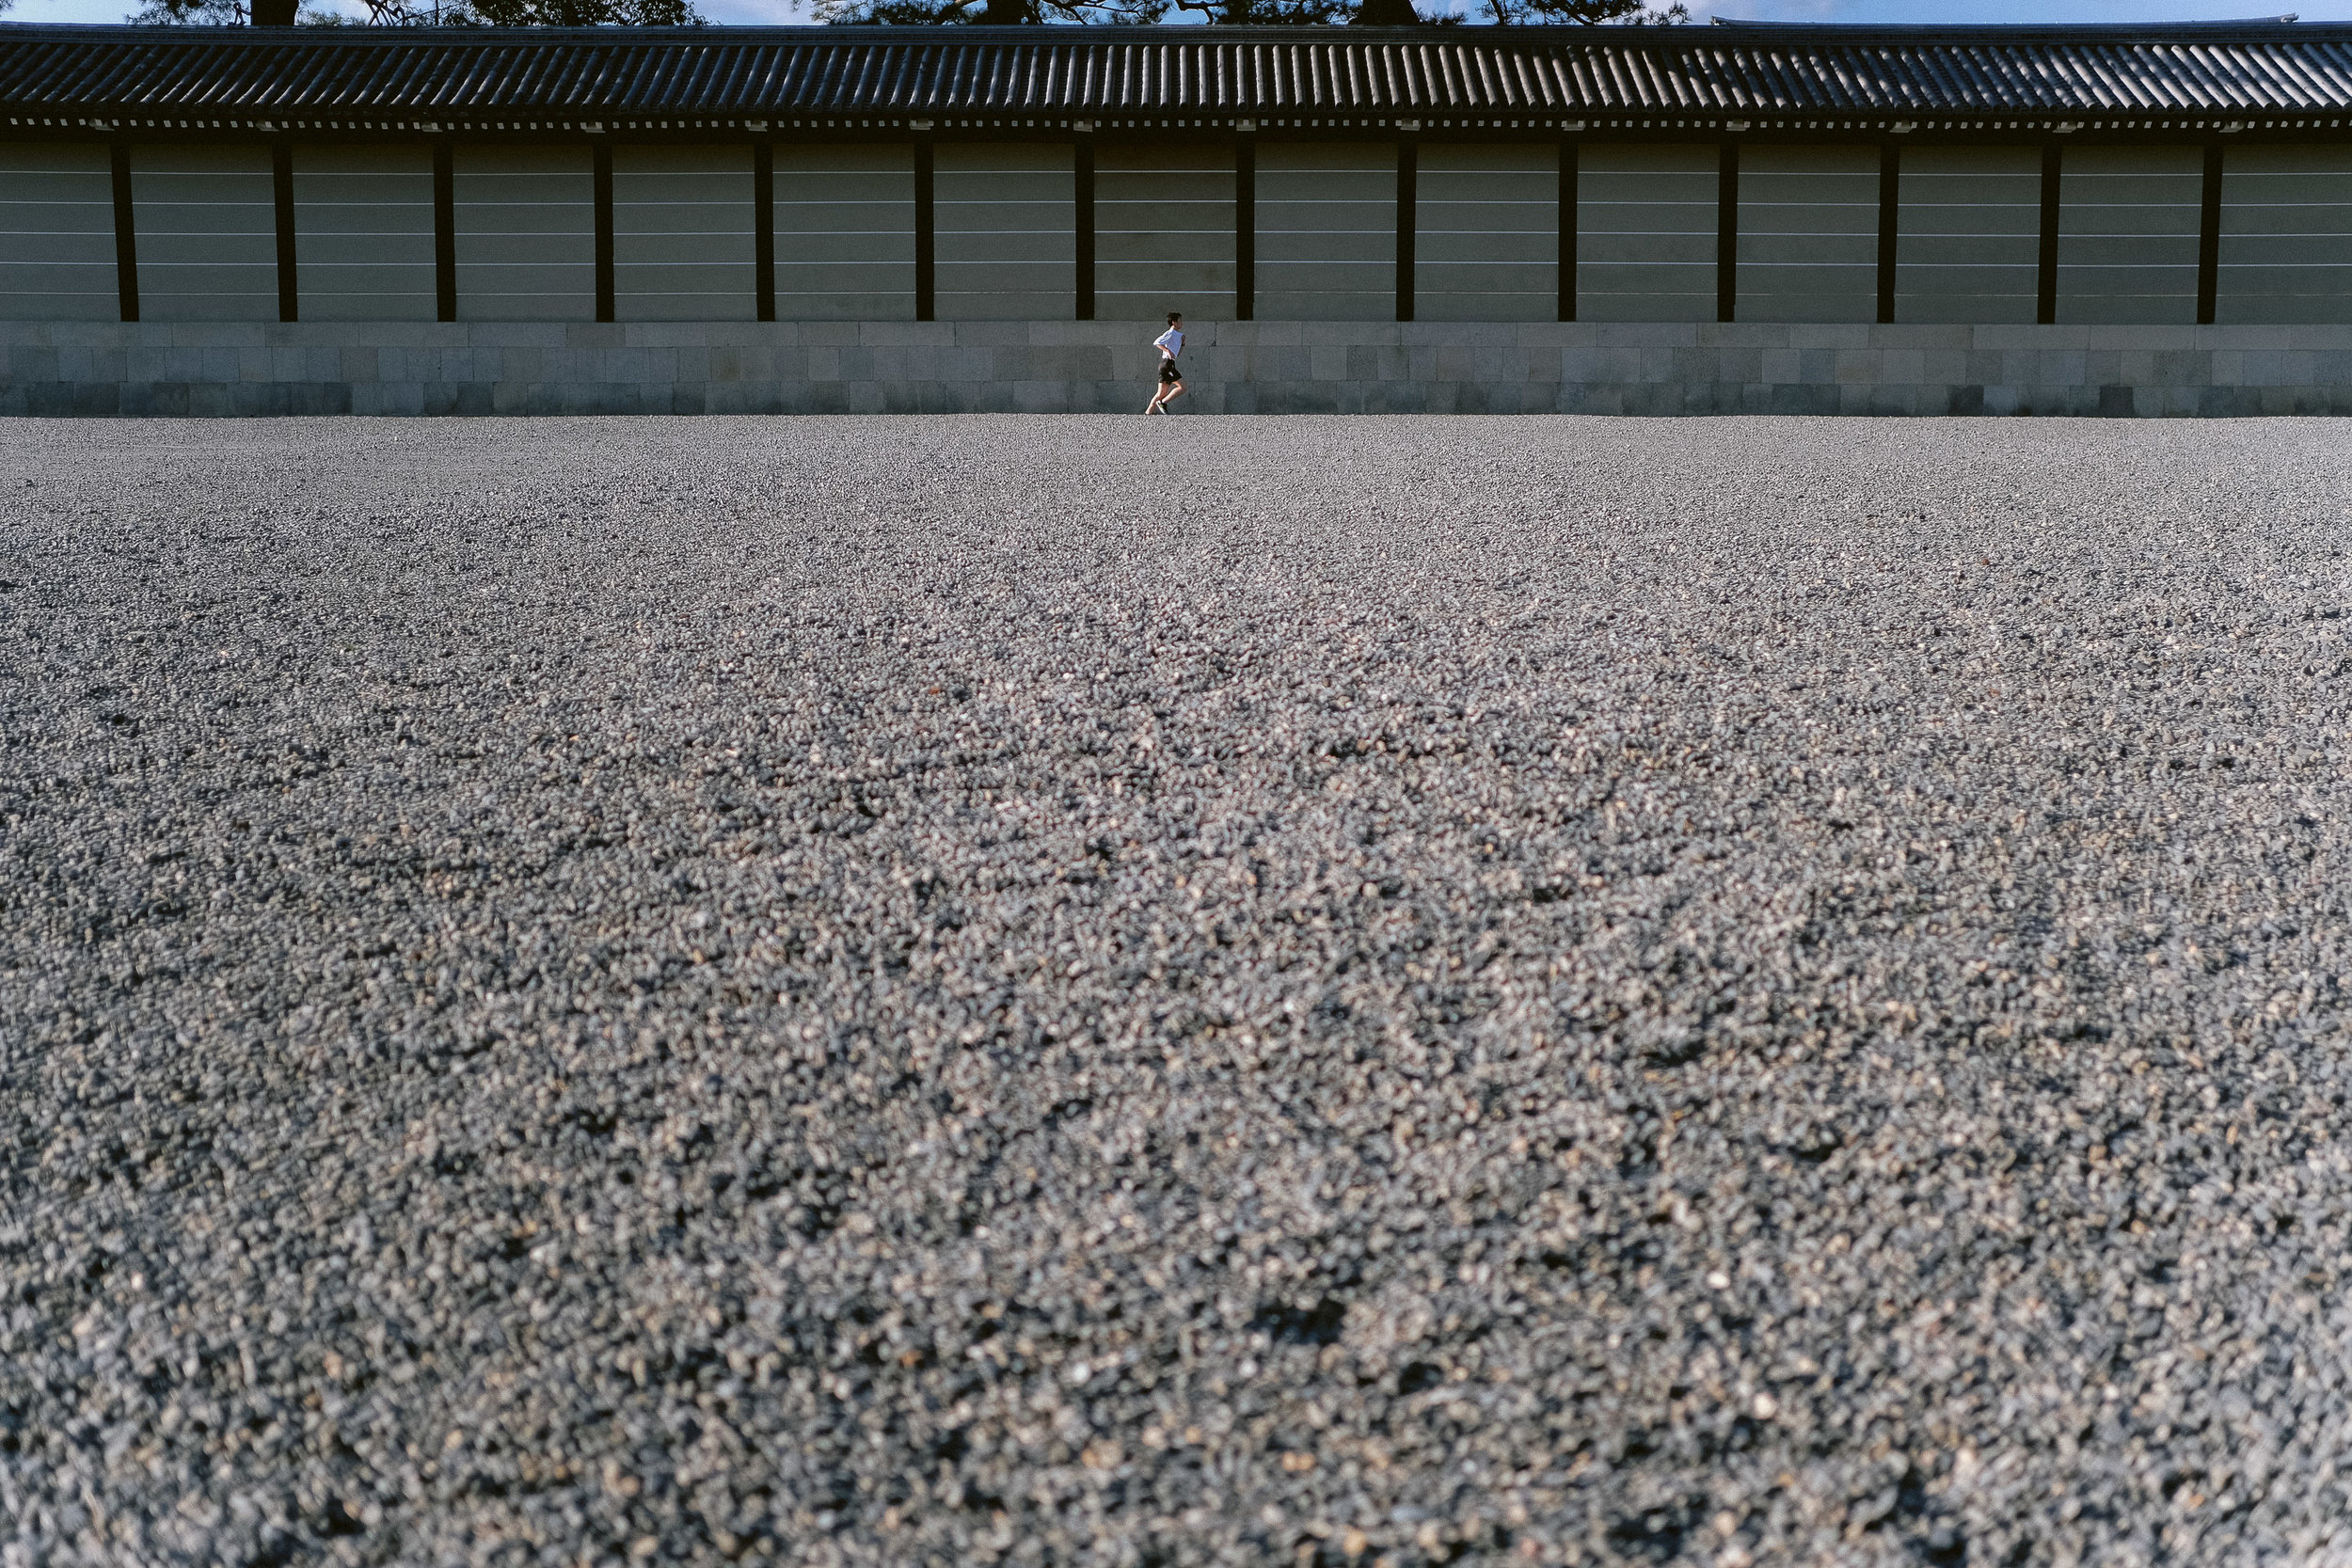 Kyoto Imperial Palace Grounds, Japan.